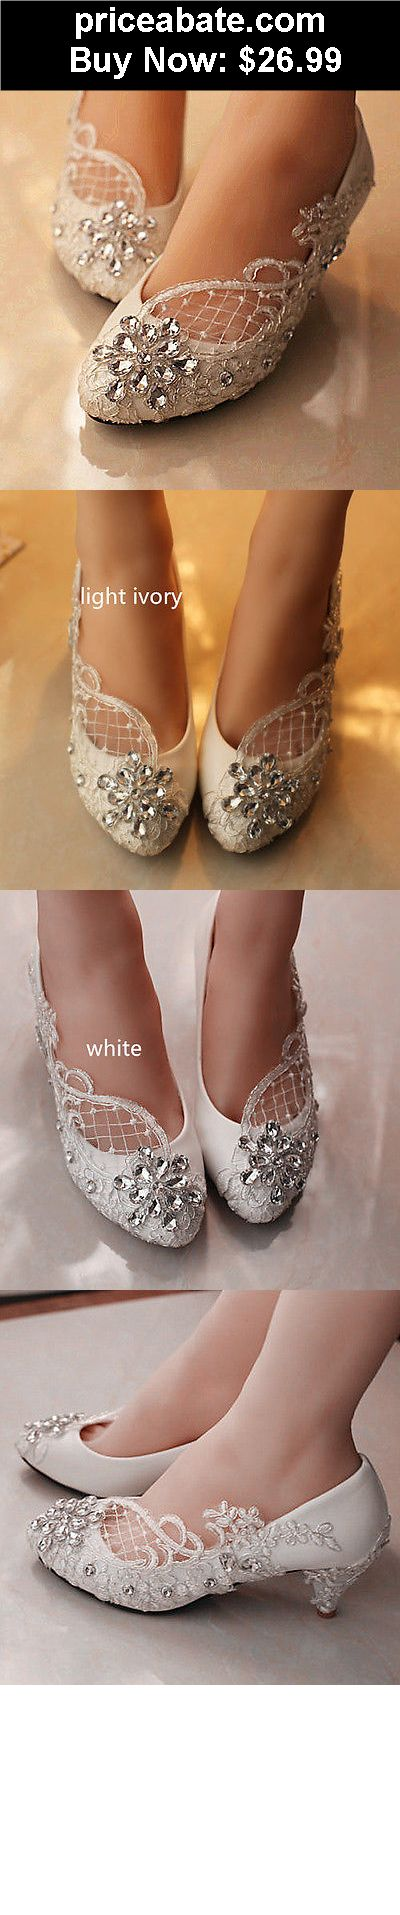 Wedding-Shoes-And-Bridal-Shoes: Lace white ivory crystal Wedding shoes Bridal flats low high heel pump size 5-12 - BUY IT NOW ONLY $26.99